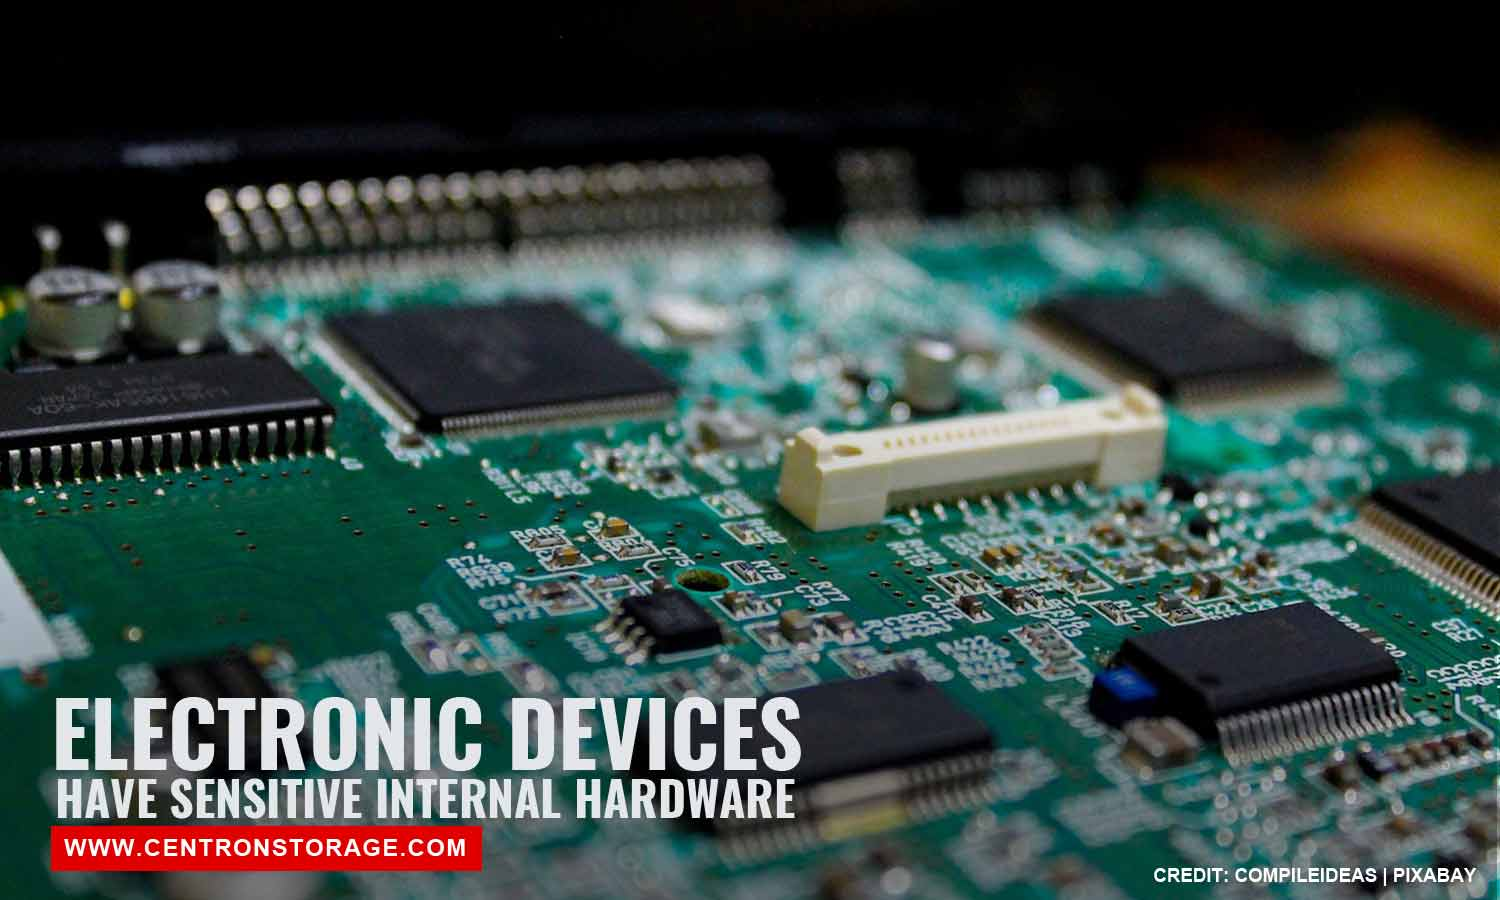 Electronic devices have sensitive internal hardware